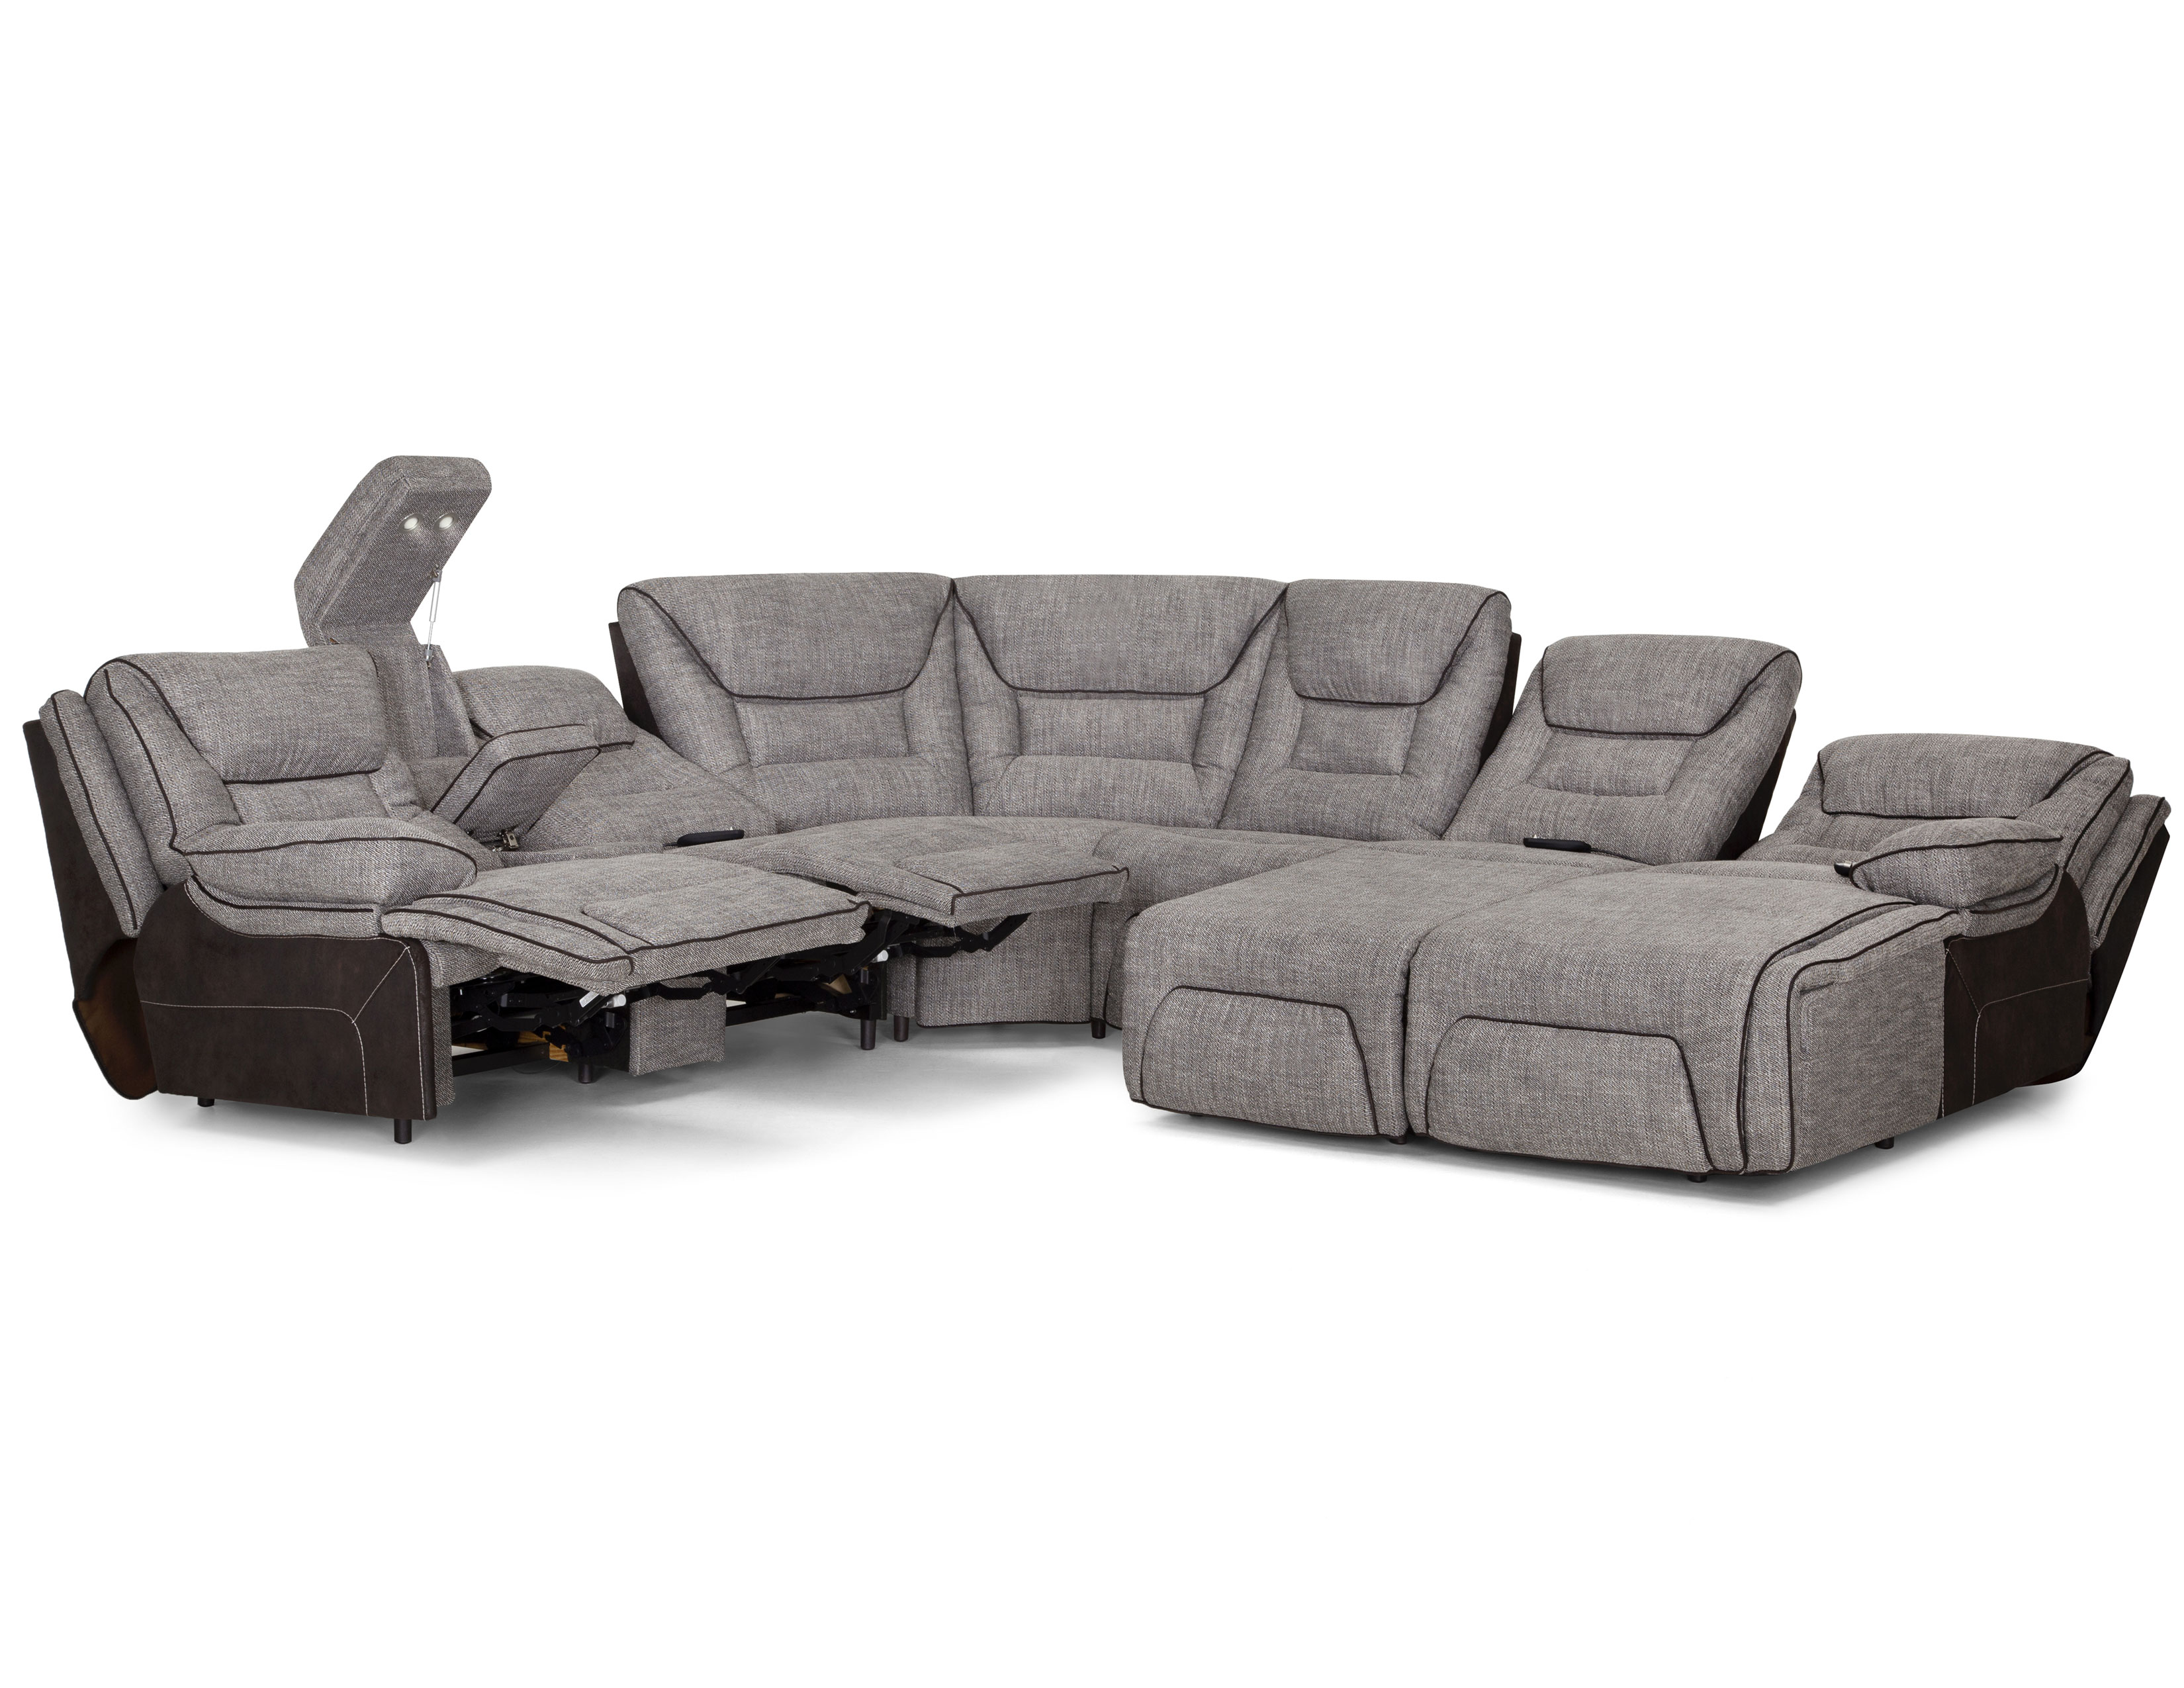 Centennial 704 Power Reclining Sectional with | Sofas and ...